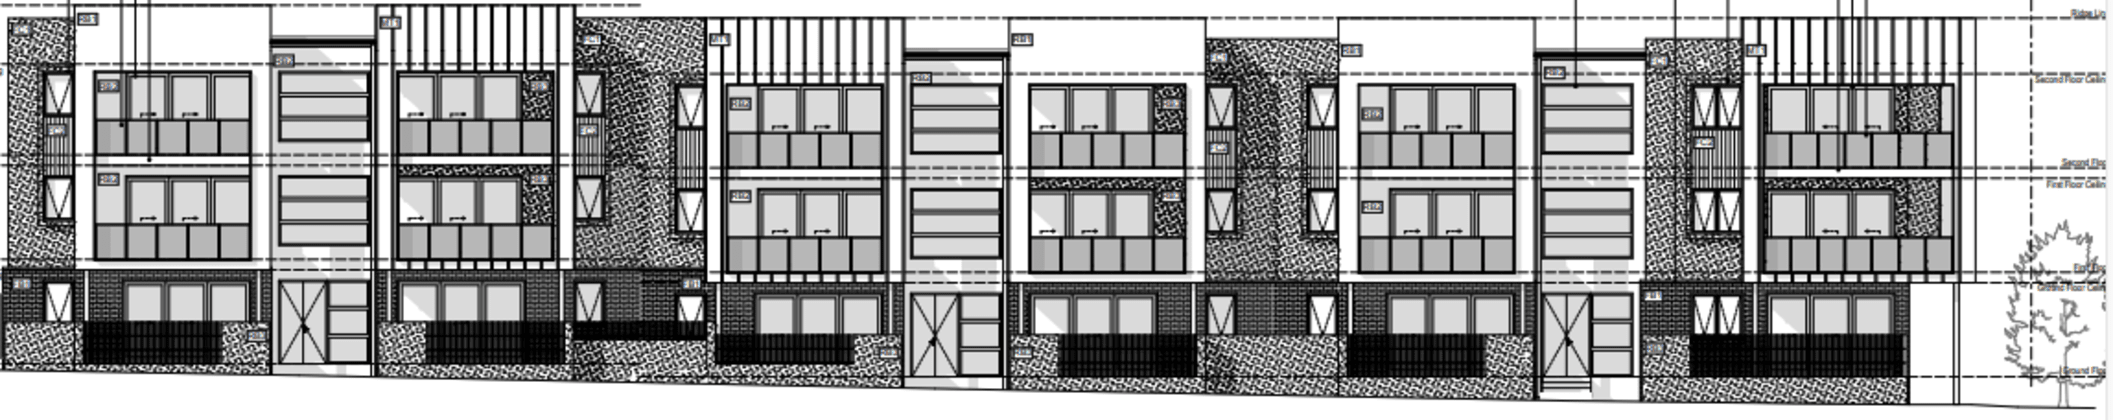 Project Image: DKO Architecture